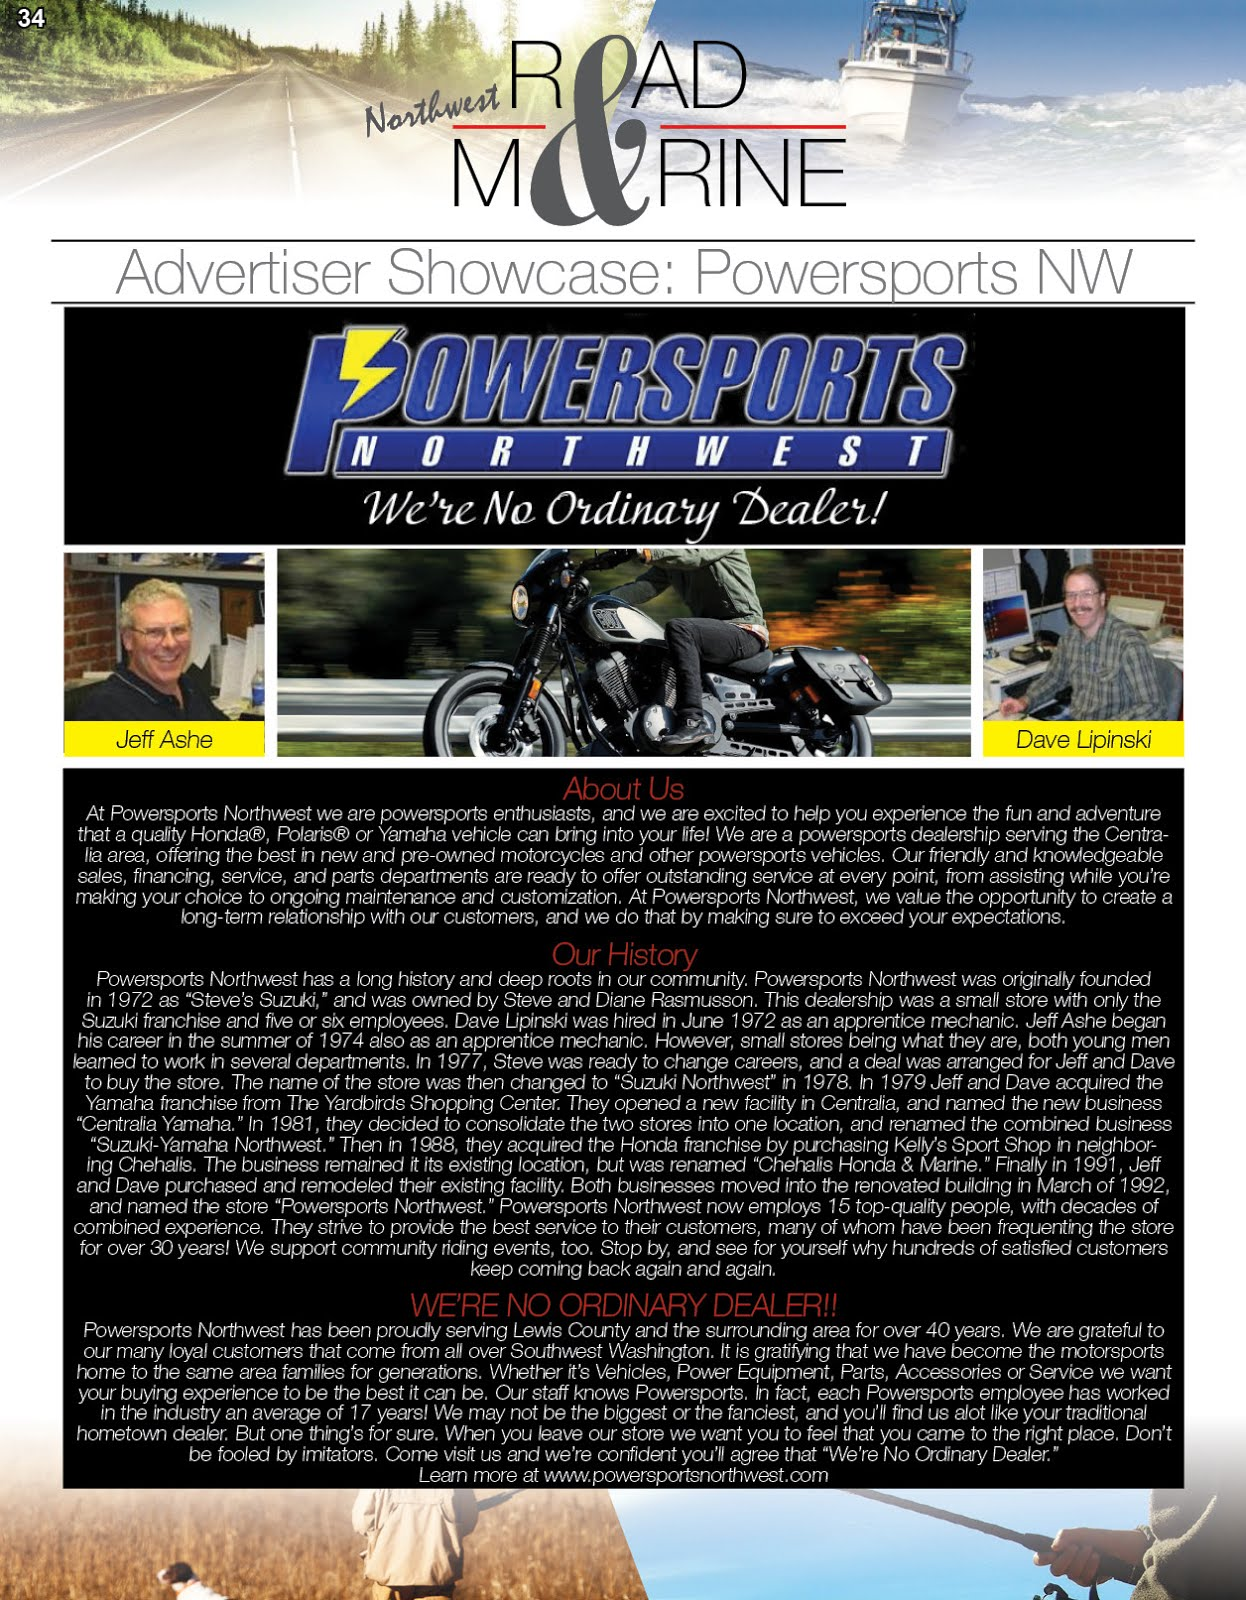 NW Road & Marine Advertiser Showcase: Powersports Northwest